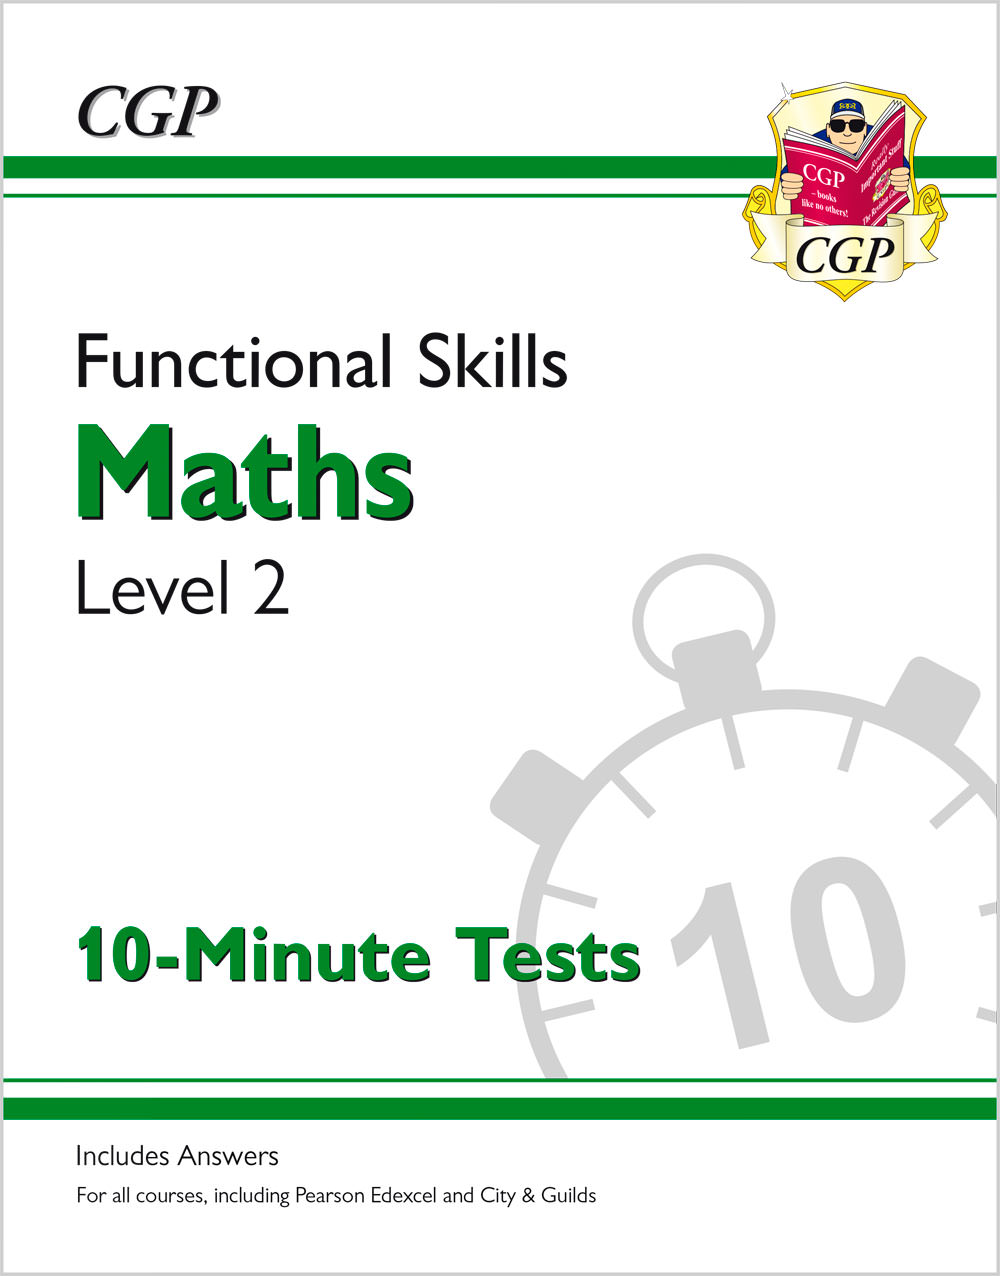 M2XPA1 - New Functional Skills Maths Level 2 - 10 Minute Tests (for 2020 & beyond)